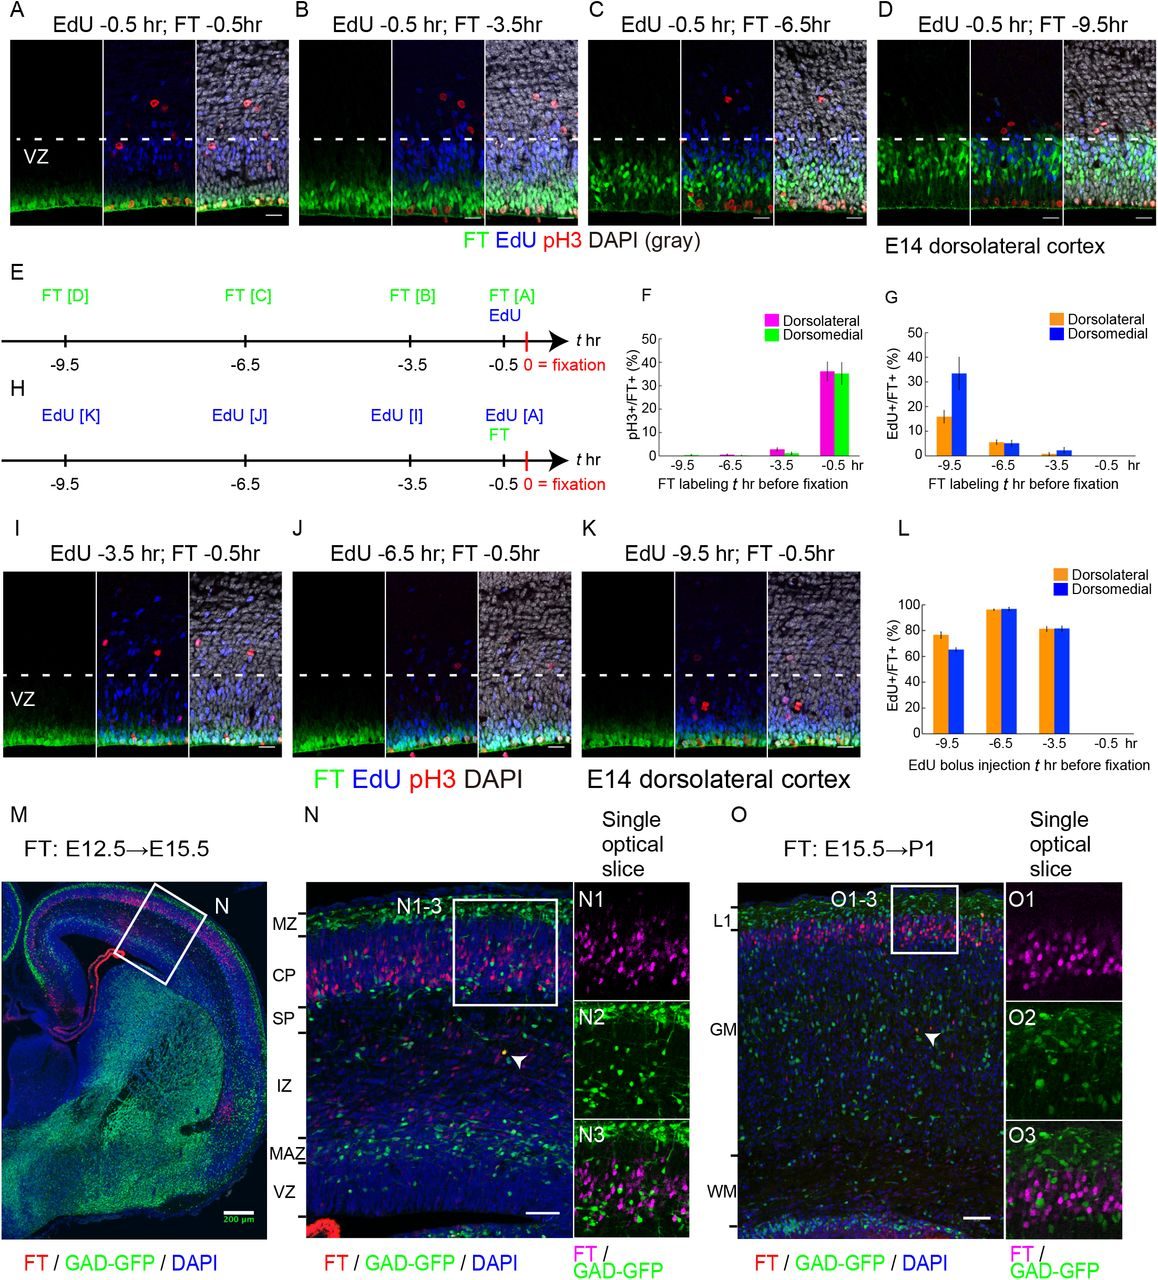 Characterization of cell population labeled with the FlashTag (FT) technology. A-G: 1 mM of 5- or 6-(N-Succinimidyloxycarbonyl) fluorescein 3',6'-diacetate (CFSE) was injected into the lateral ventricles (LV) at embryonic day (E)14 ICR mice and fixed 0.5 (A), 3.5 (B), 6.5 (C), 9.5 (D) hours later. Intraperitoneal bolus injection of 5-Ethynyl-2'-deoxyuridine (EdU) was performed maternally 0.5 hours before fixation. Photomicrographs from the dorsolateral cortex were shown. In (A), FT-labeled cells positioned most apically and were often positive for phospho-histone H3 (pH3) ( Figure 1F -0.5 hour, dorsolateral: 36.1± 4.0% [mean ± standard error of means], 339 cells from 5 brains; dorsomedial: 35.2 ± 4.7%, 249 cells from 5 brains) but negative for EdU administered at the same time ( Figure 1G , -0.5 hour, dorsolateral: 0 ± 0%, 339 cells from 5 brains; dorsomedial: 0 ± 0%, 249 cells from 5 brains). The nuclei of EdU positive cells positioned basally in the VZ. 3.5 hours after FT injection, FT-labeled cells left the ventricular surface but still near it, and were no longer positive for pH3 (B) ( Figure 1F , -3.5 hours, dorsolateral: 2.8 ± 0.7%, 530 cells from 5 brains; dorsomedial: 1.1 ± 0.5%, 415 cells from 5 brains). 6.5 hours after labeling, almost no cells were adjacent to the lateral ventricle (C). 9.5 hours after labeling, most of the labeled cells were in about basal two thirds in the VZ and double labeled for EdU, suggesting that some of them reentered the S-phase (D) ( Figure 1G , -9.5 hours, dorsolateral: 15.9± 2.5%, 711 cells from 5 brains; dorsomedial: 33.4 ± 6.6 %, 546 cells from 5 brains). Schematic presentation of these experiments was shown in E. In (F), percentages of pH3+ cells out of the FT-labeled cells were shown. Magenta, pH3+ FT+/FT+ in the dorsolateral cortex. Green, pH3+ FT+/FT+ in the dorsomedial cortex. In (G), percentages of EdU+ cells out of FT-labeled cells were shown. Orange, EdU+ FT+/FT+ in the dorsolateral cortex. Blue, EdU+ FT+/FT+ in the